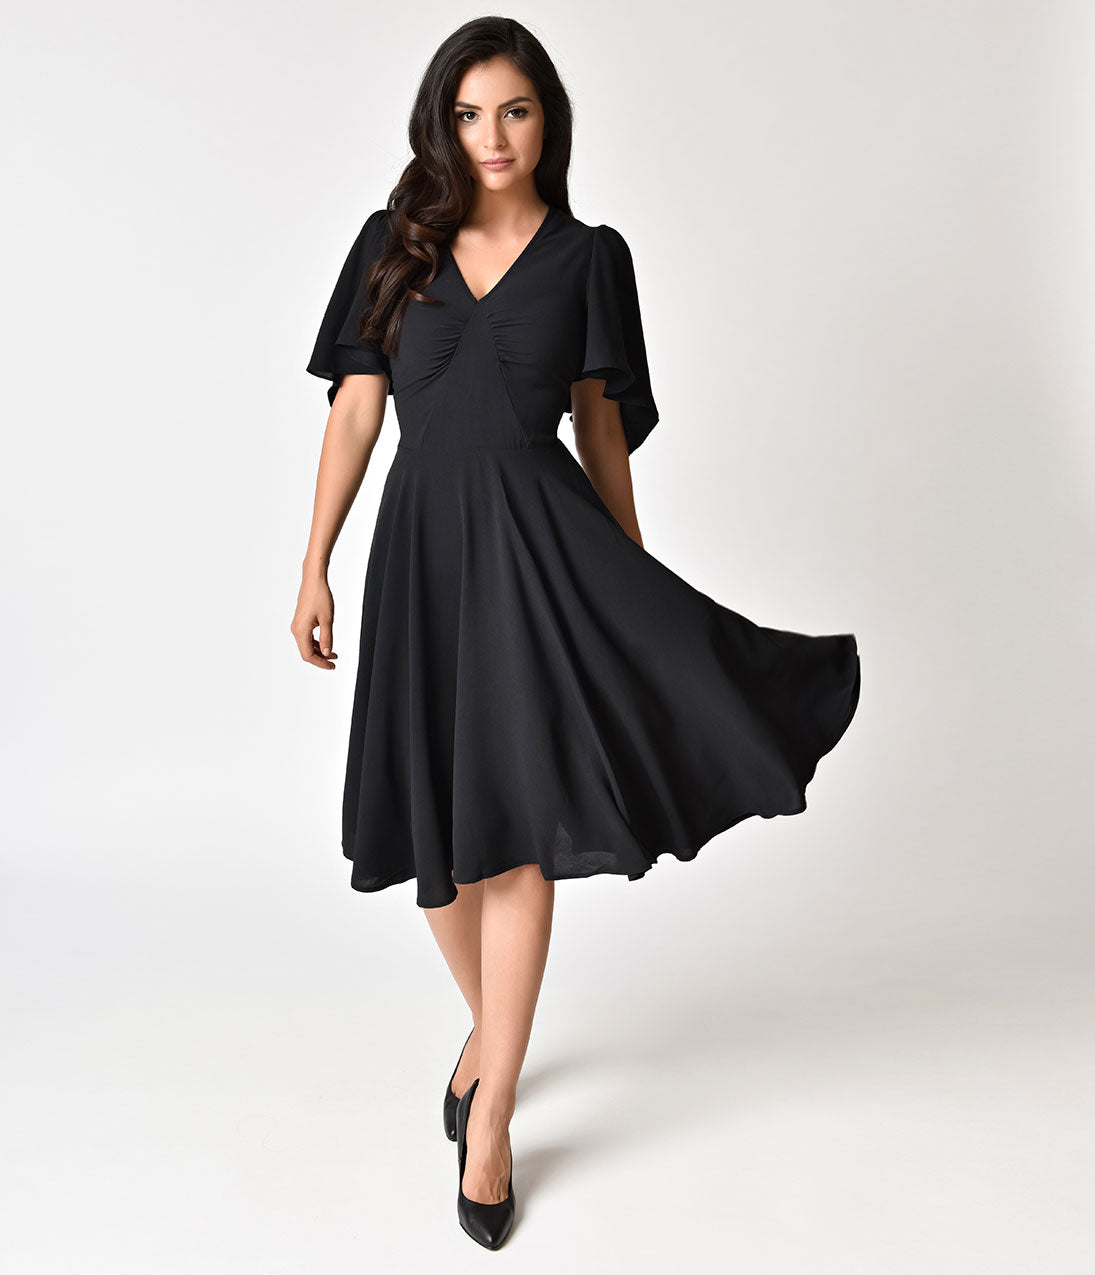 500 Vintage Style Dresses for Sale Hell Bunny 1940s Style Black Butterfly Sleeve Carolina Swing Dress $98.00 AT vintagedancer.com